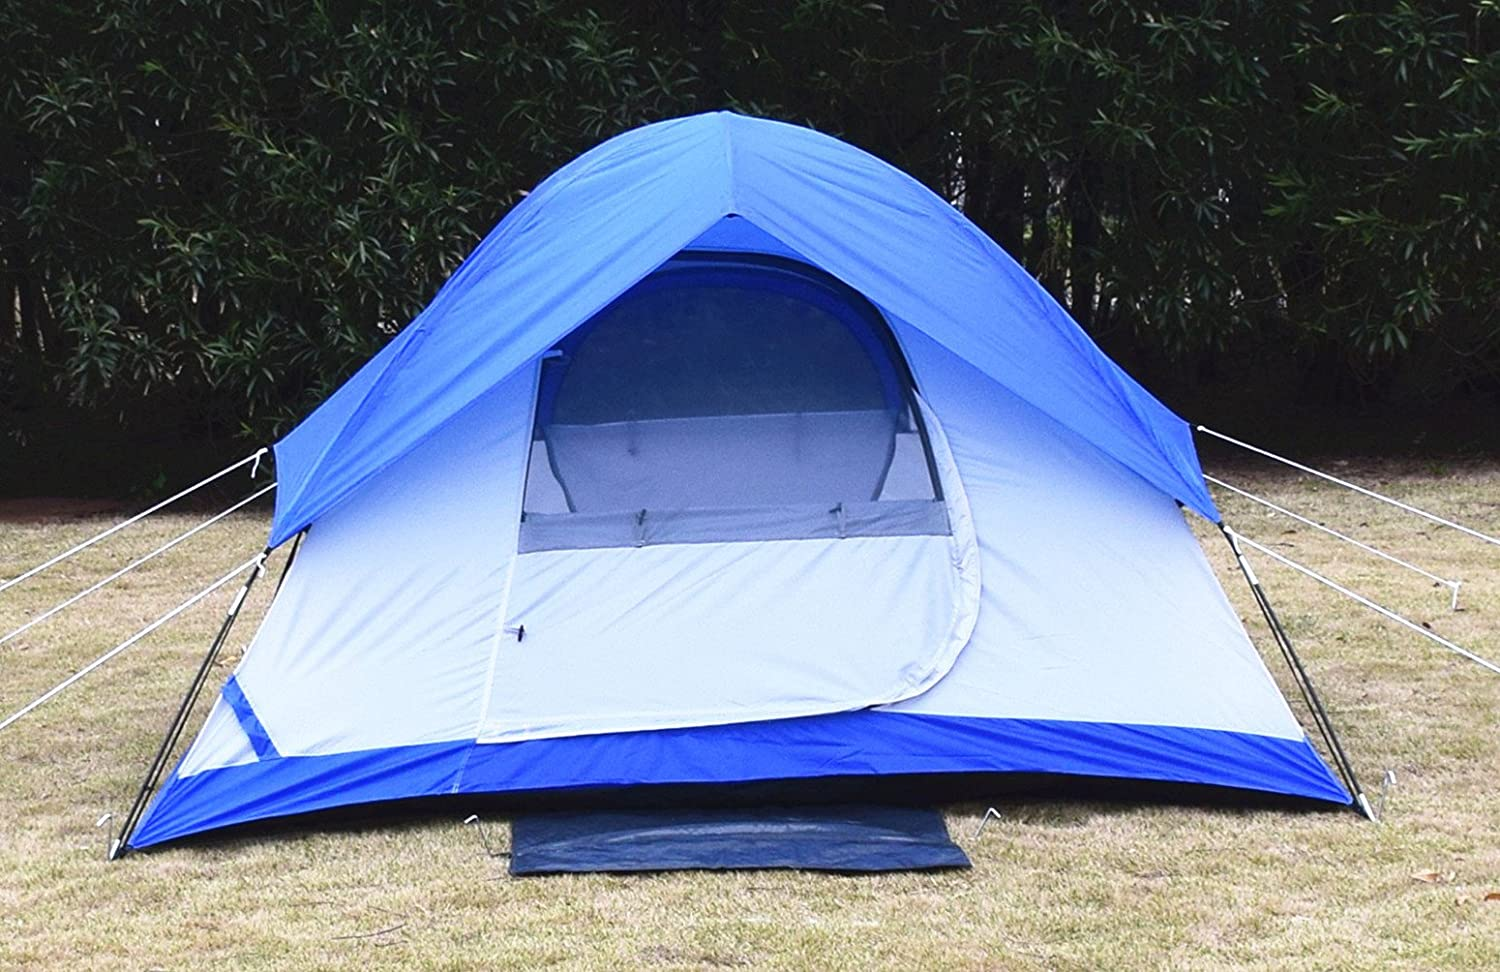 USA STAR Mountain Waterproof Tent Dome Outdoor Camping Instant Tents for Camping 2 Person White Blue by Busen   B01EBTNCUA